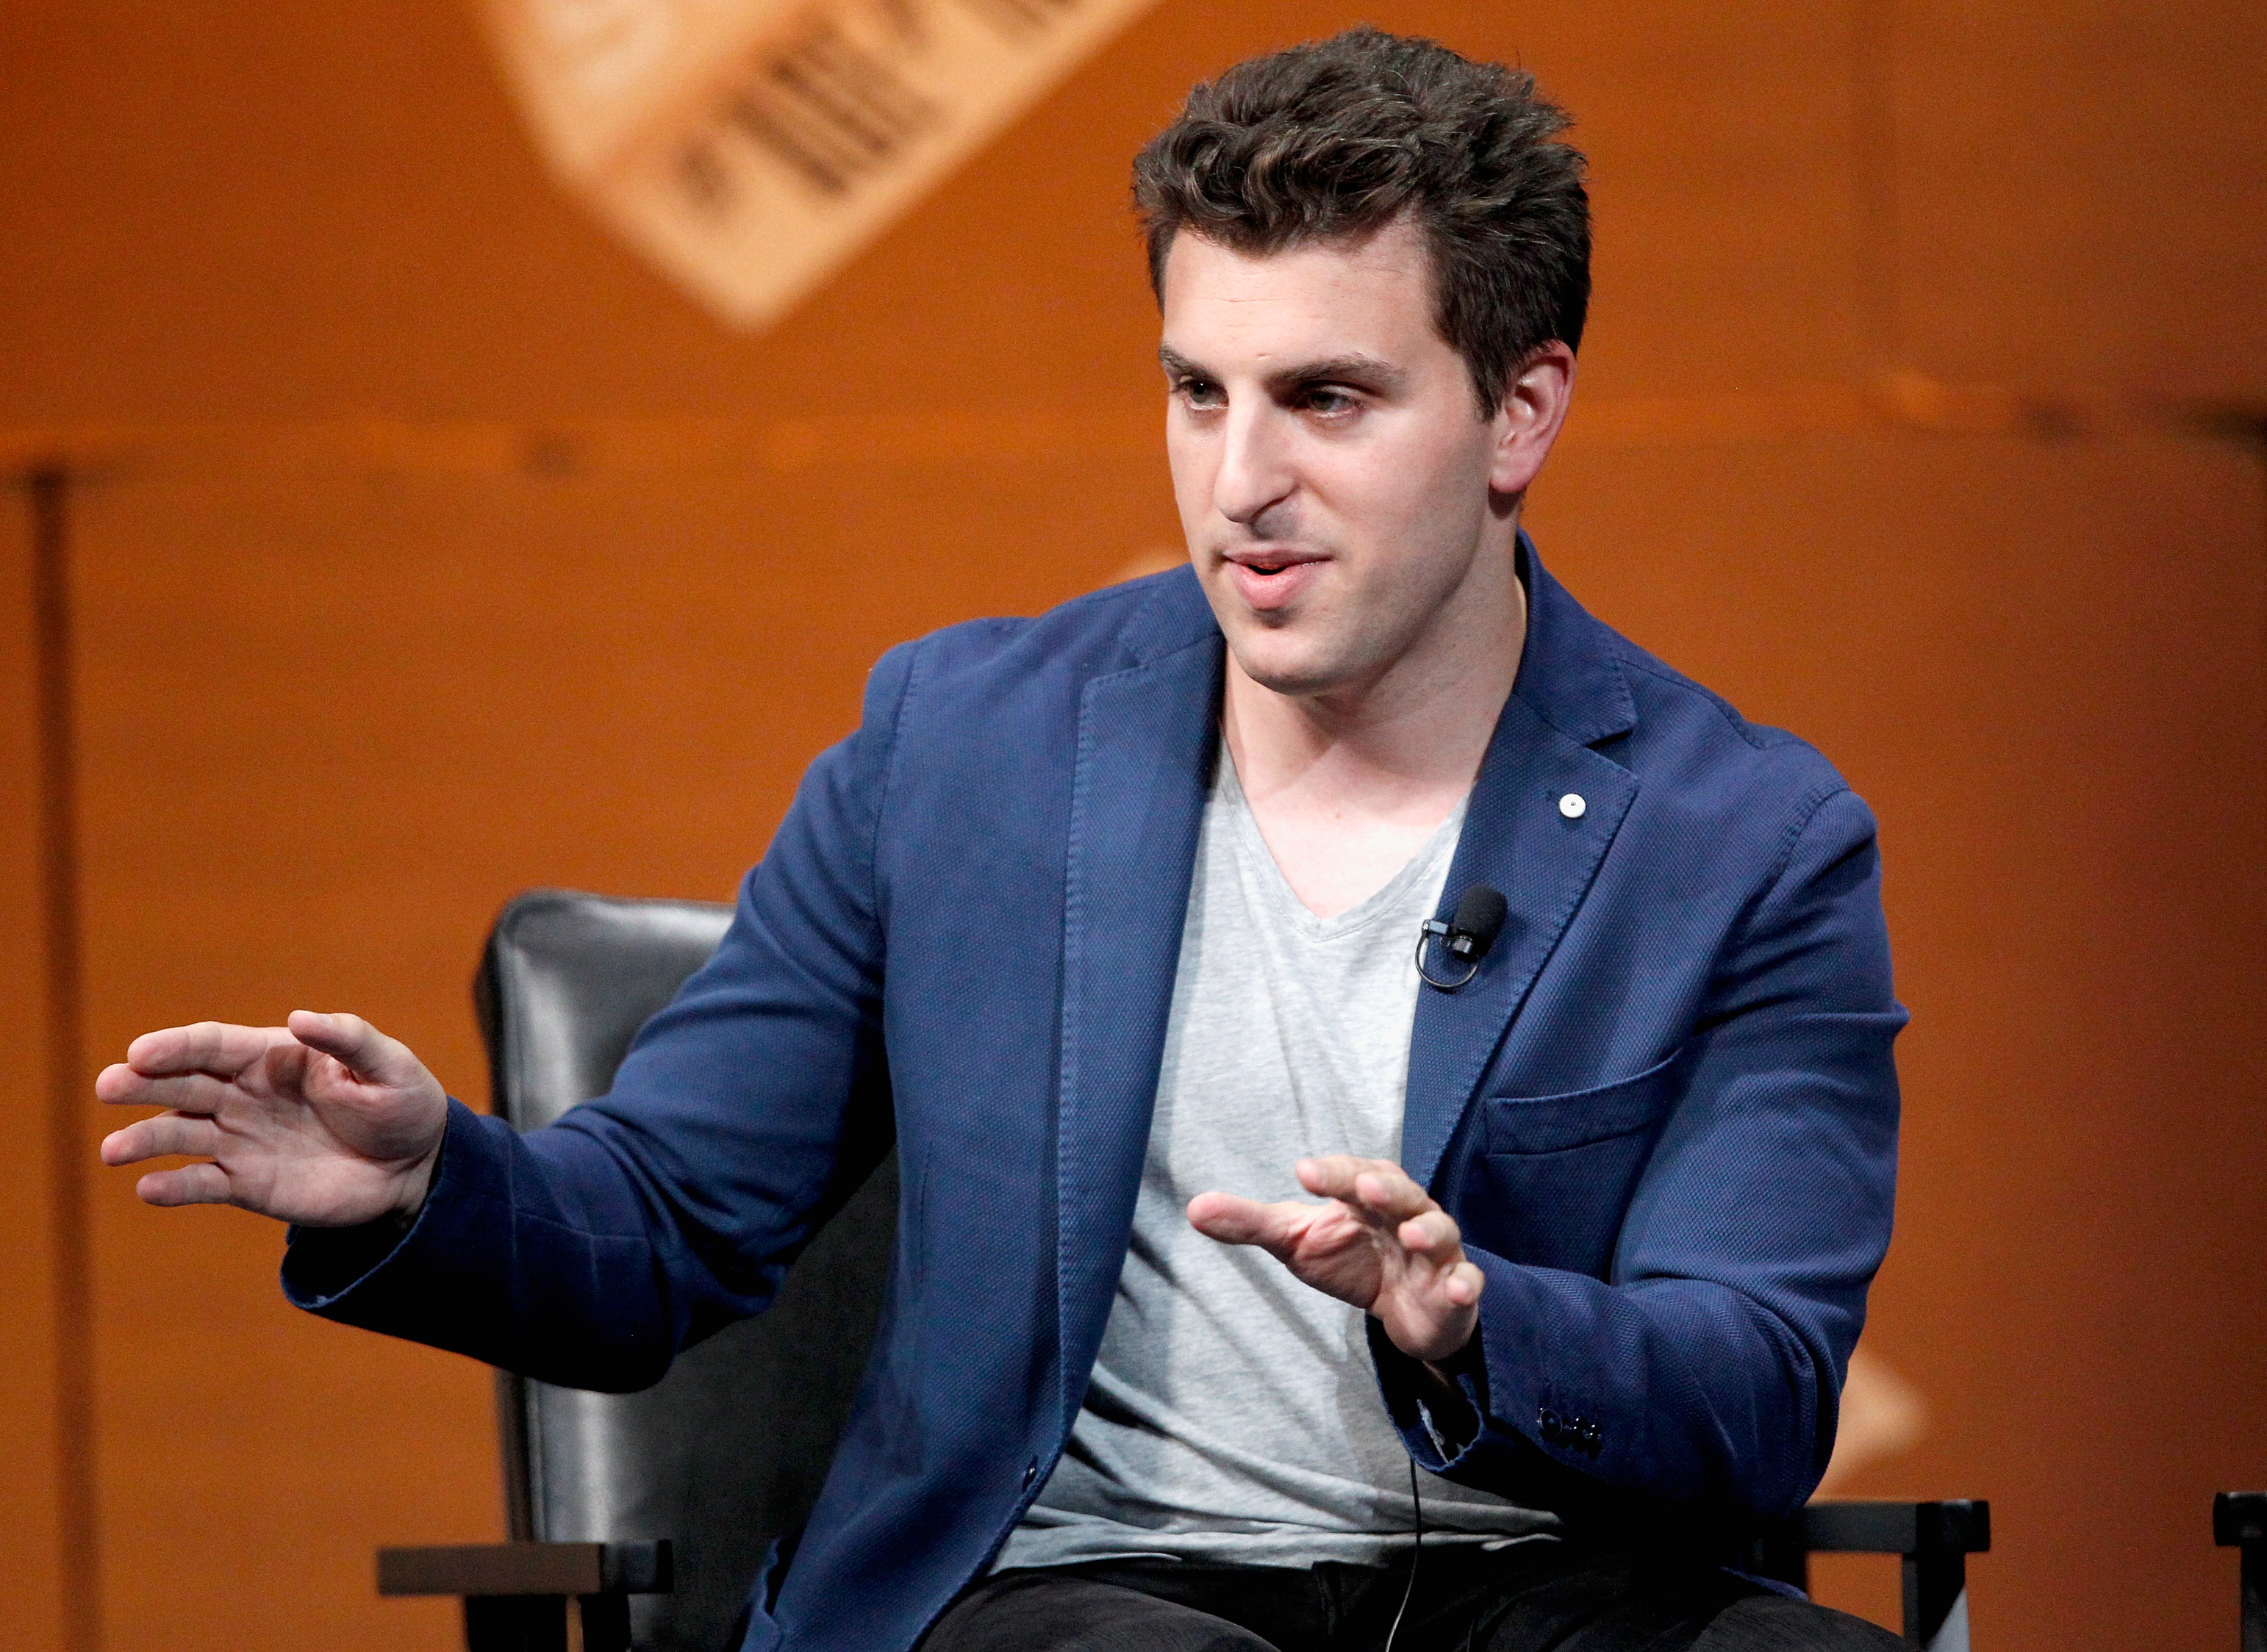 Airbnb Co-Founder and CEO Brian Chesky speaks onstage during  Generation Next  at the Vanity Fair New Establishment Summit at Yerba Buena Center for the Arts on October 9, 2014 in San Francisco, California.